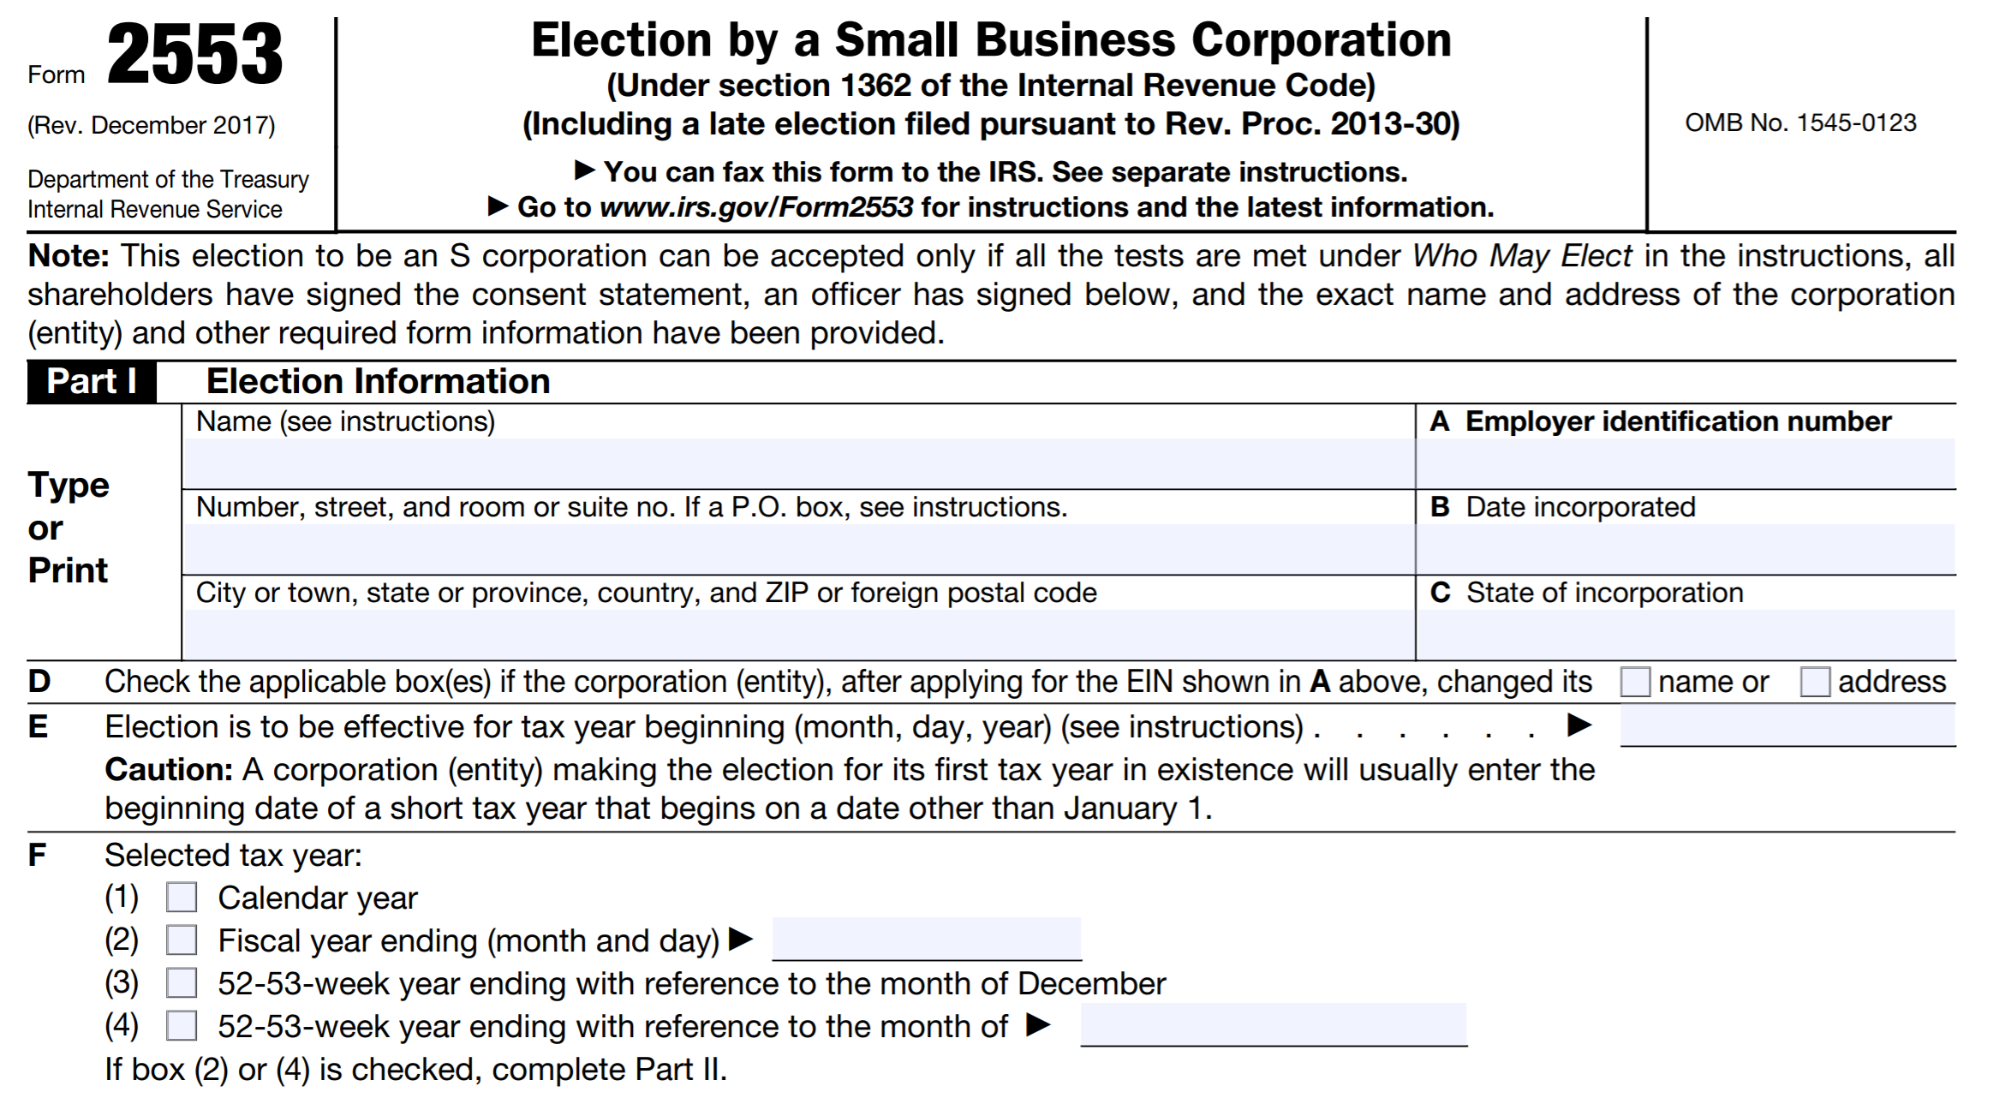 llc vs. s-corp form 2553